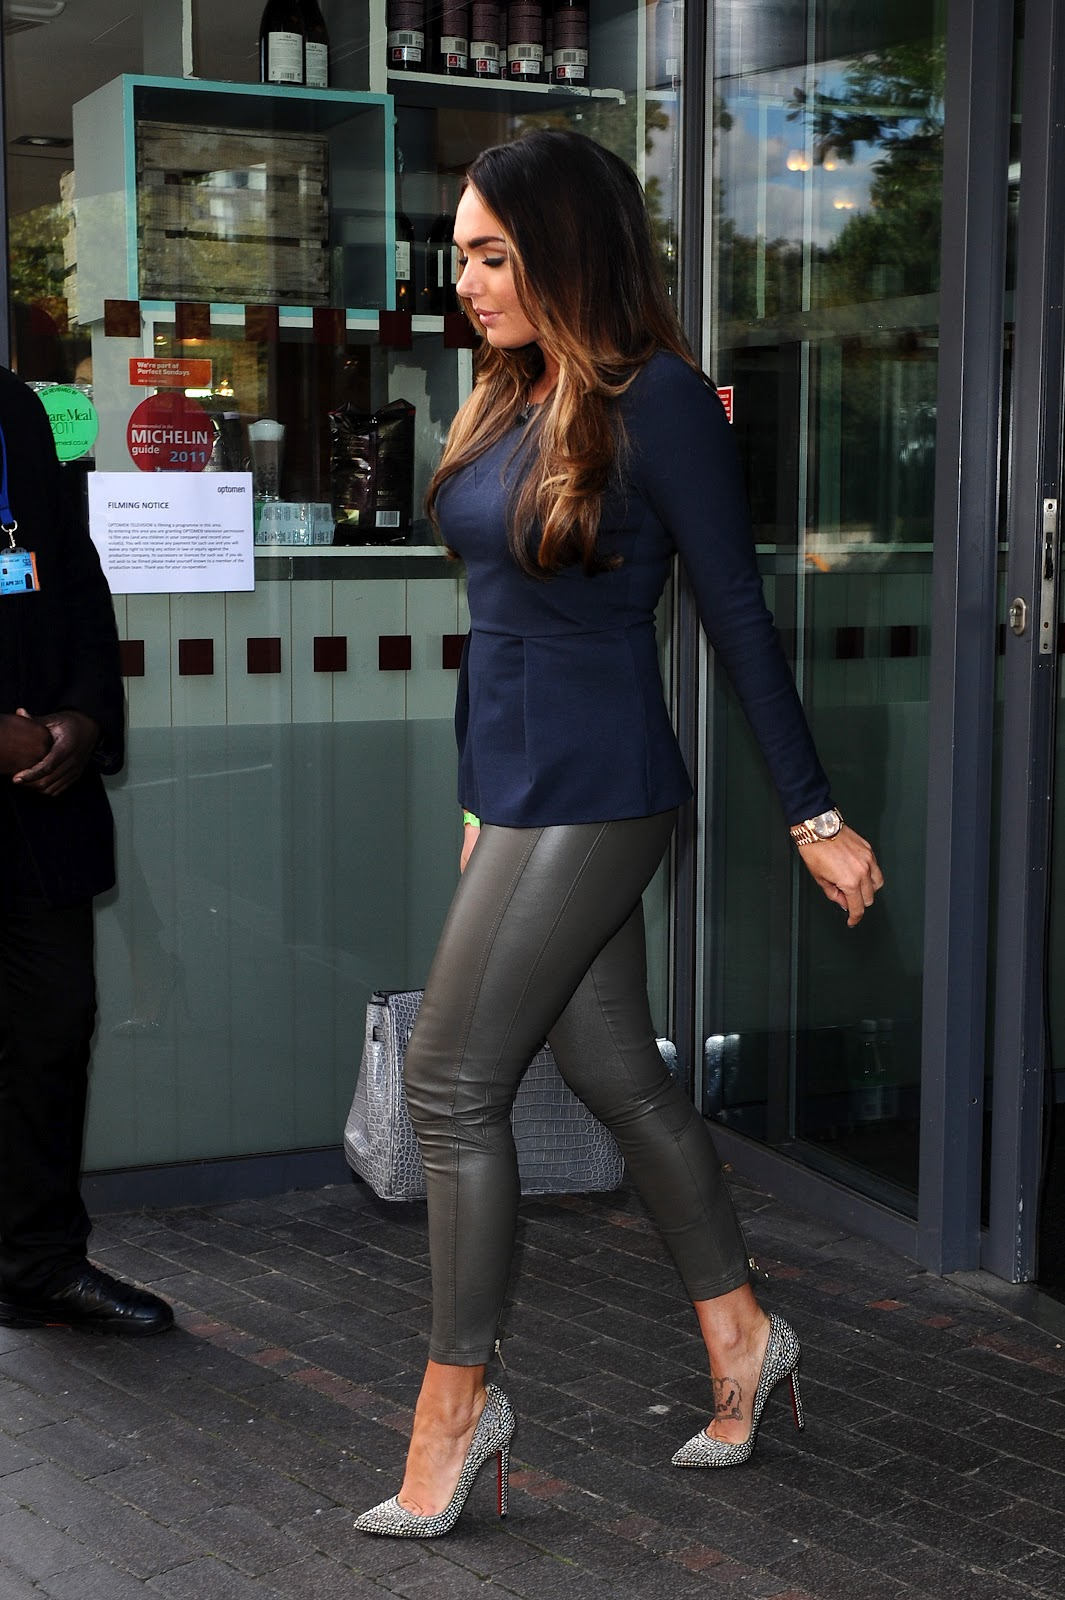 Tamara ecclestone leather pants tamara ecclestone leather dress tamara - Tamara Ecclestone Spotted Leaving Hotel Gb In London